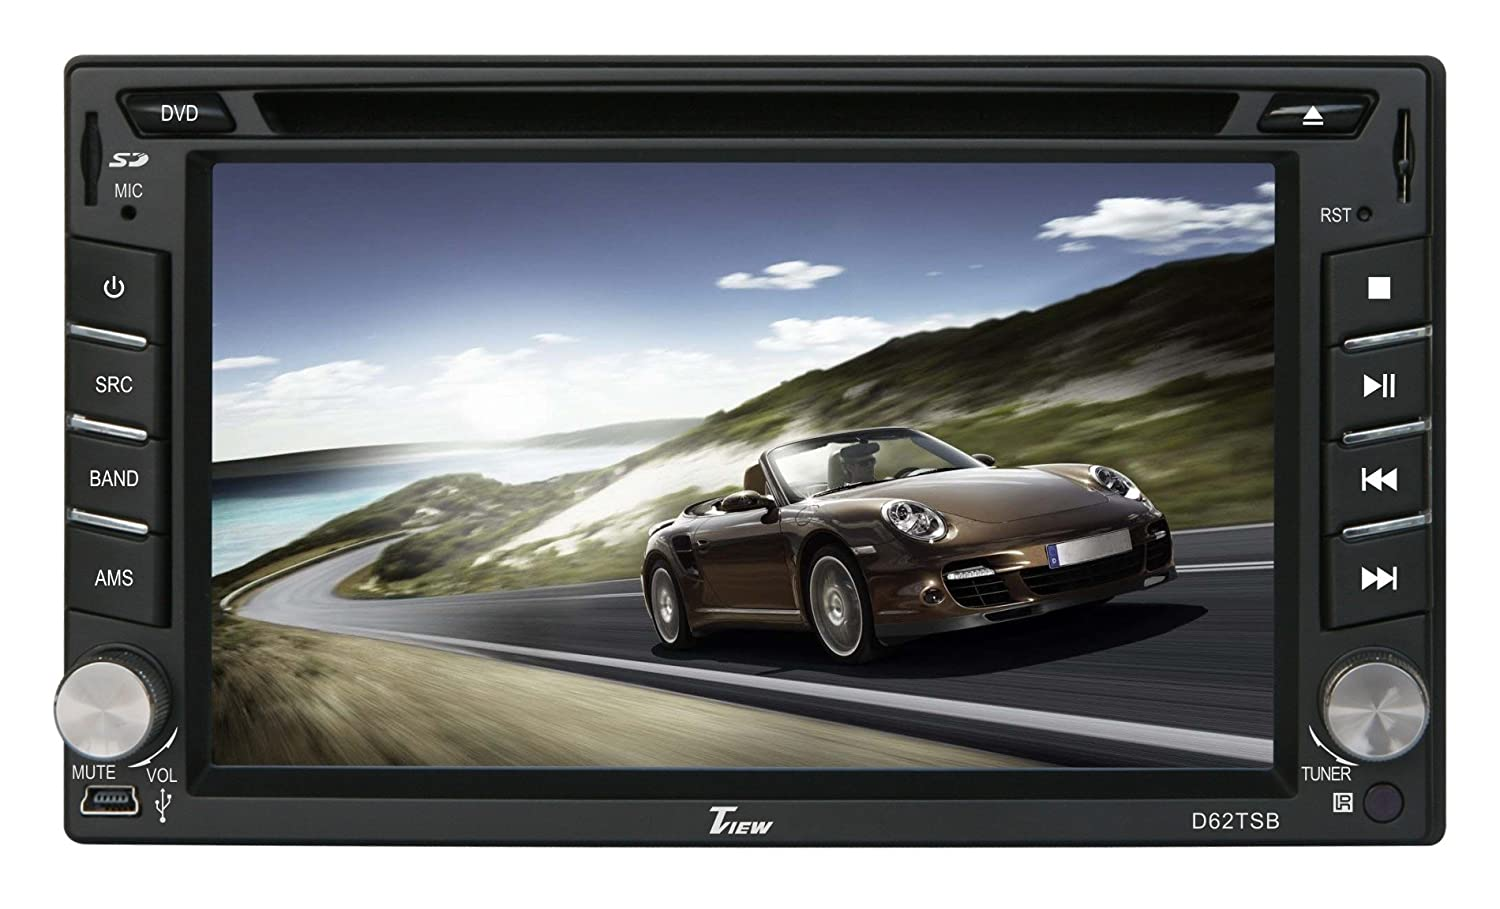 71N8 eVkMJL._SL1500_ amazon com tview d62tsb 6 2 inch double din touch screen with tview d75tsb wiring harness at creativeand.co